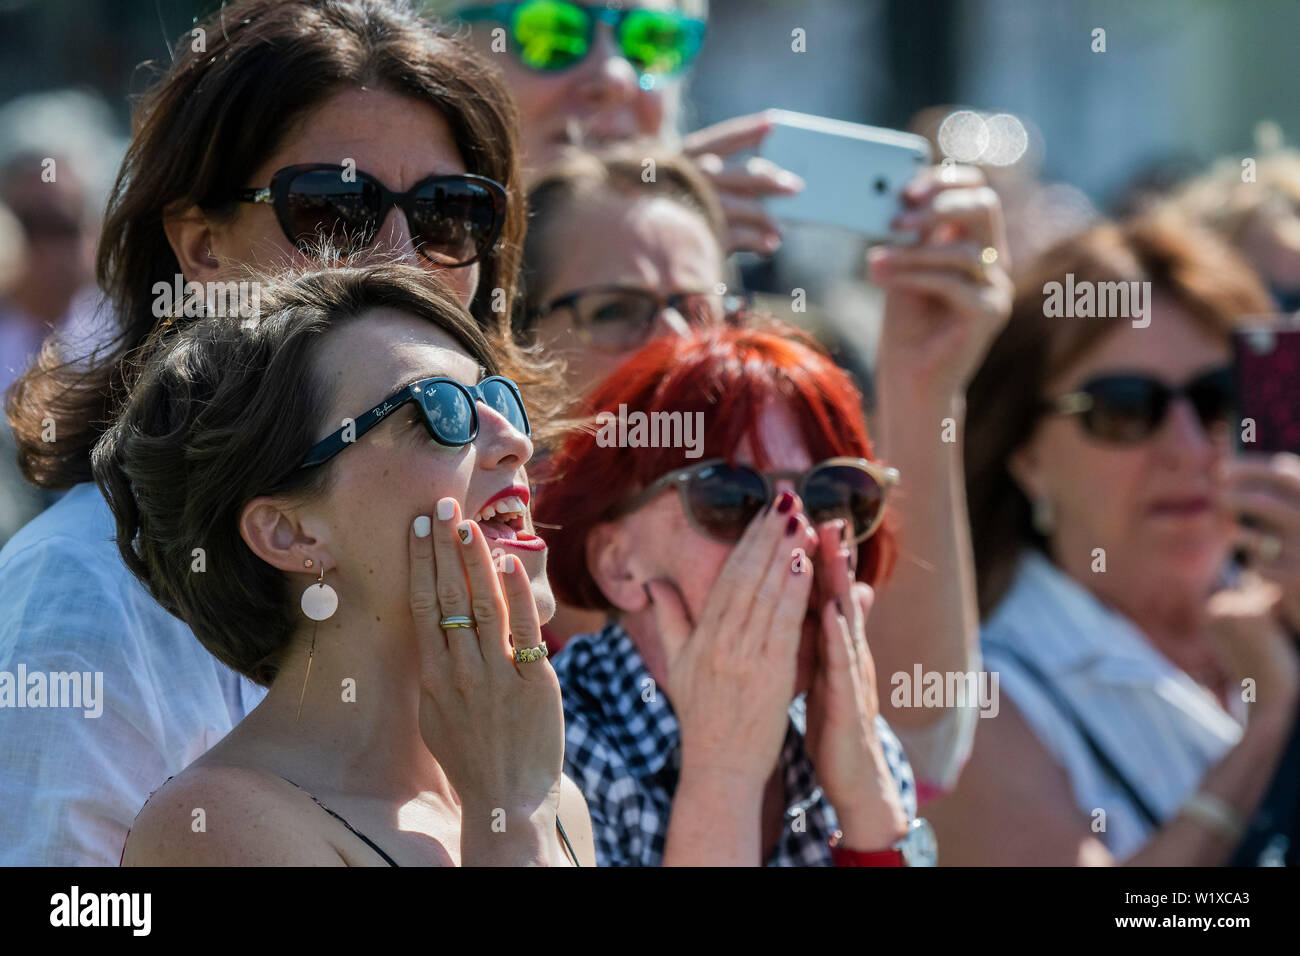 Henley-on-Thames, UK. 3rd July 2019. Speactators cheer on their crews from the river bank and from moored boats - Rowing at the 2019 Henley Royal Regatta, Henley-on-Thames. Credit: Guy Bell/Alamy Live News - Stock Image